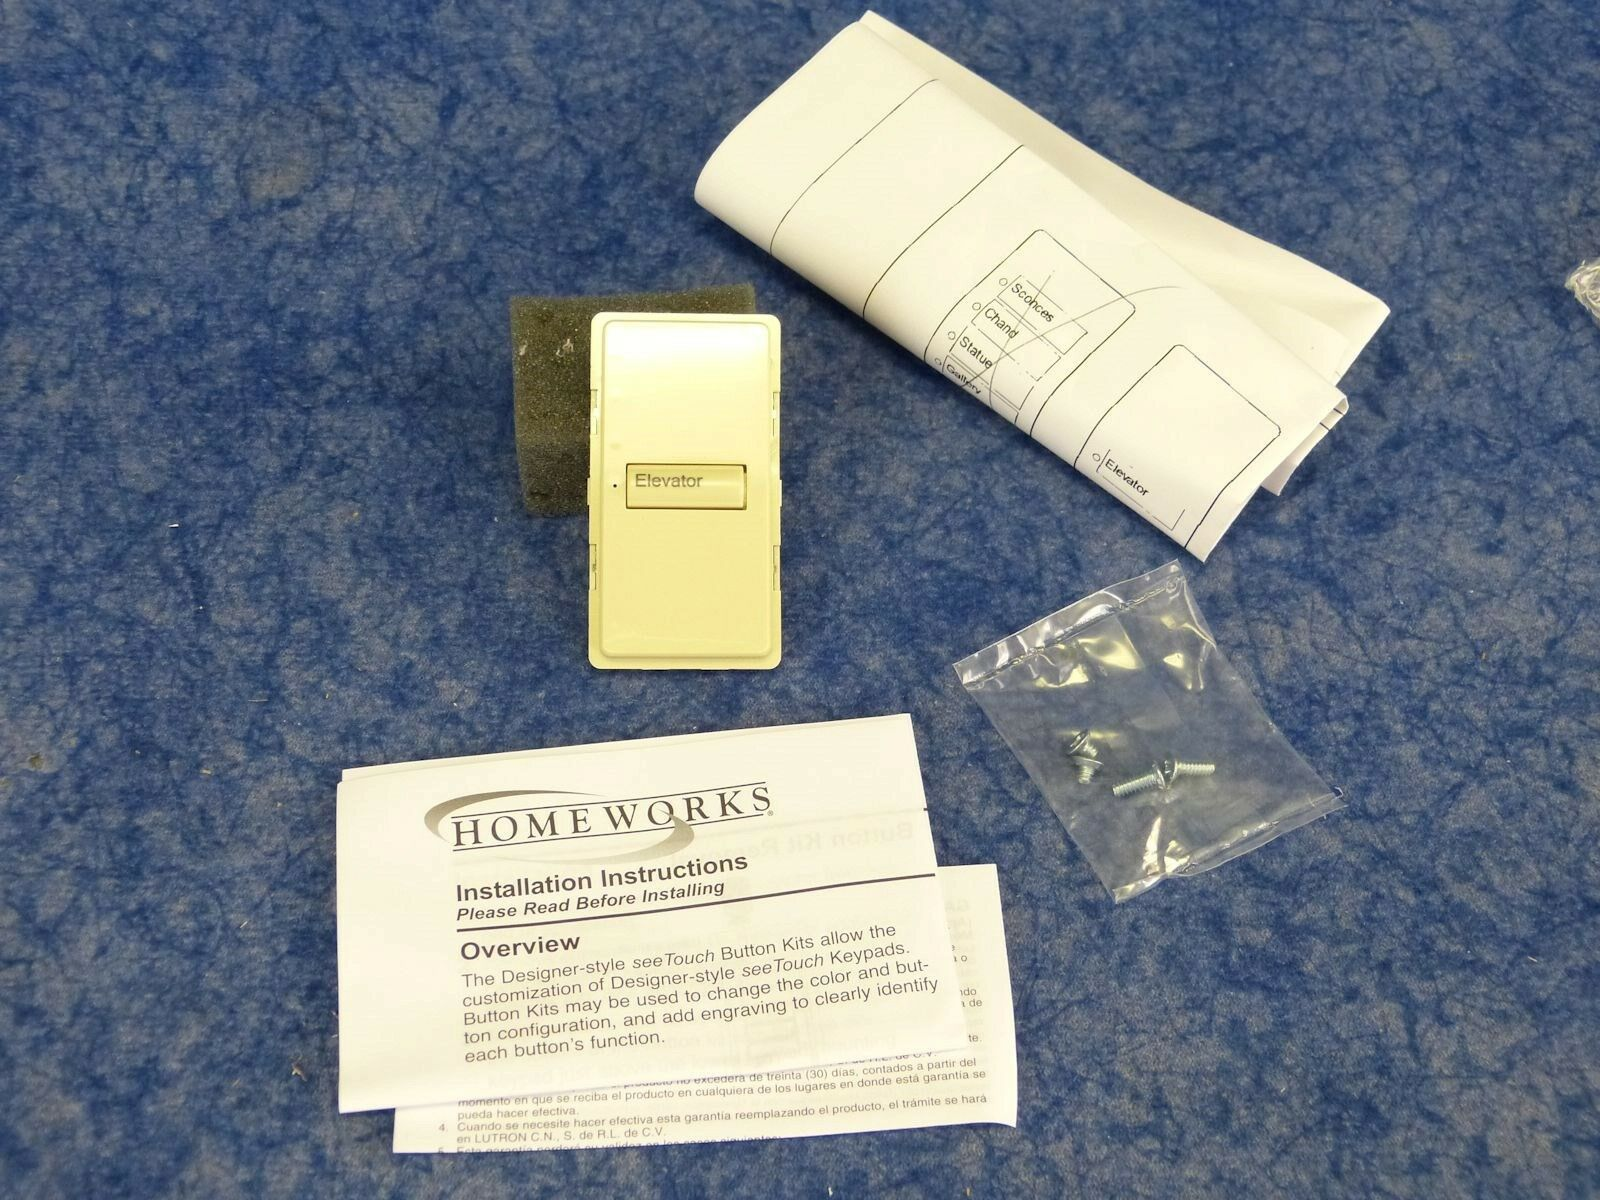 NEW Lutron SKD-1B-IV-E / Homeworks seeTouch 1 Button engraved kit